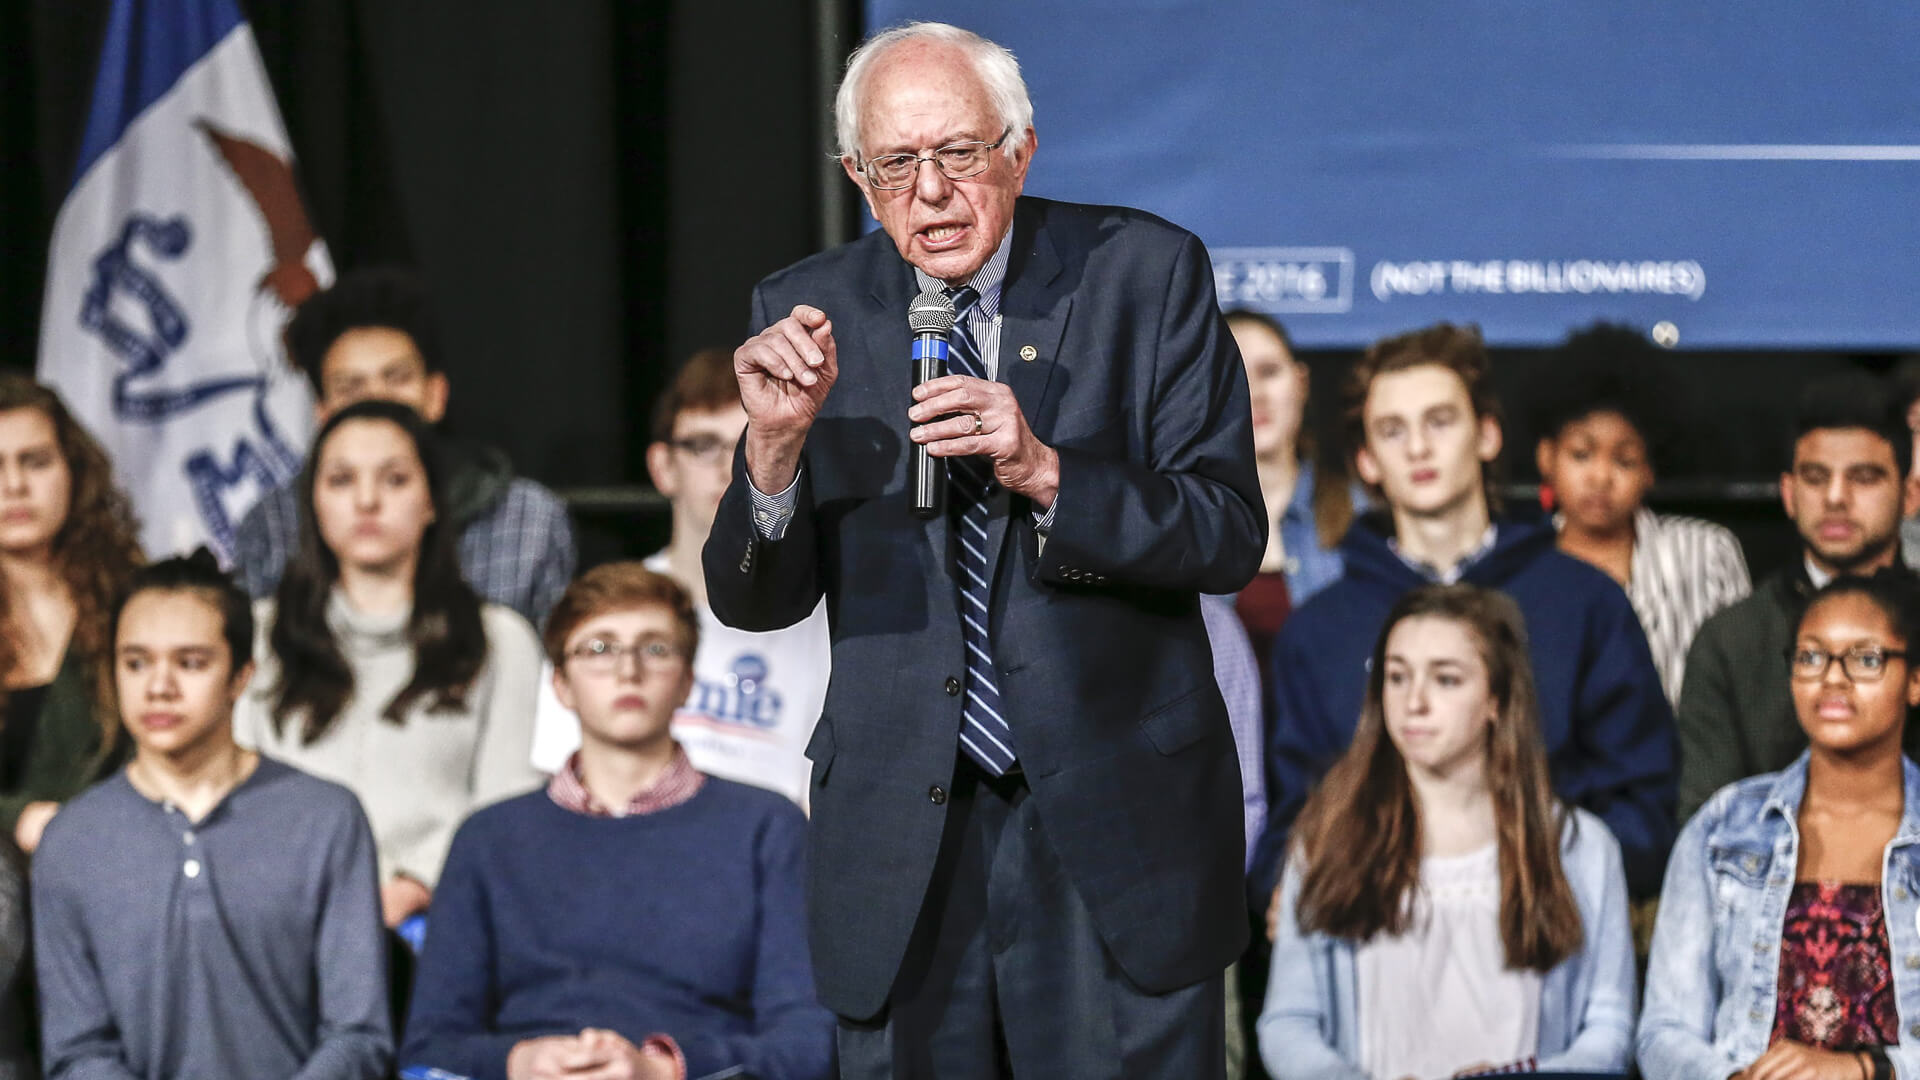 Bernie Sanders' Student Loan Forgiveness Plan Works for Millennials, but What About Everyone Else?